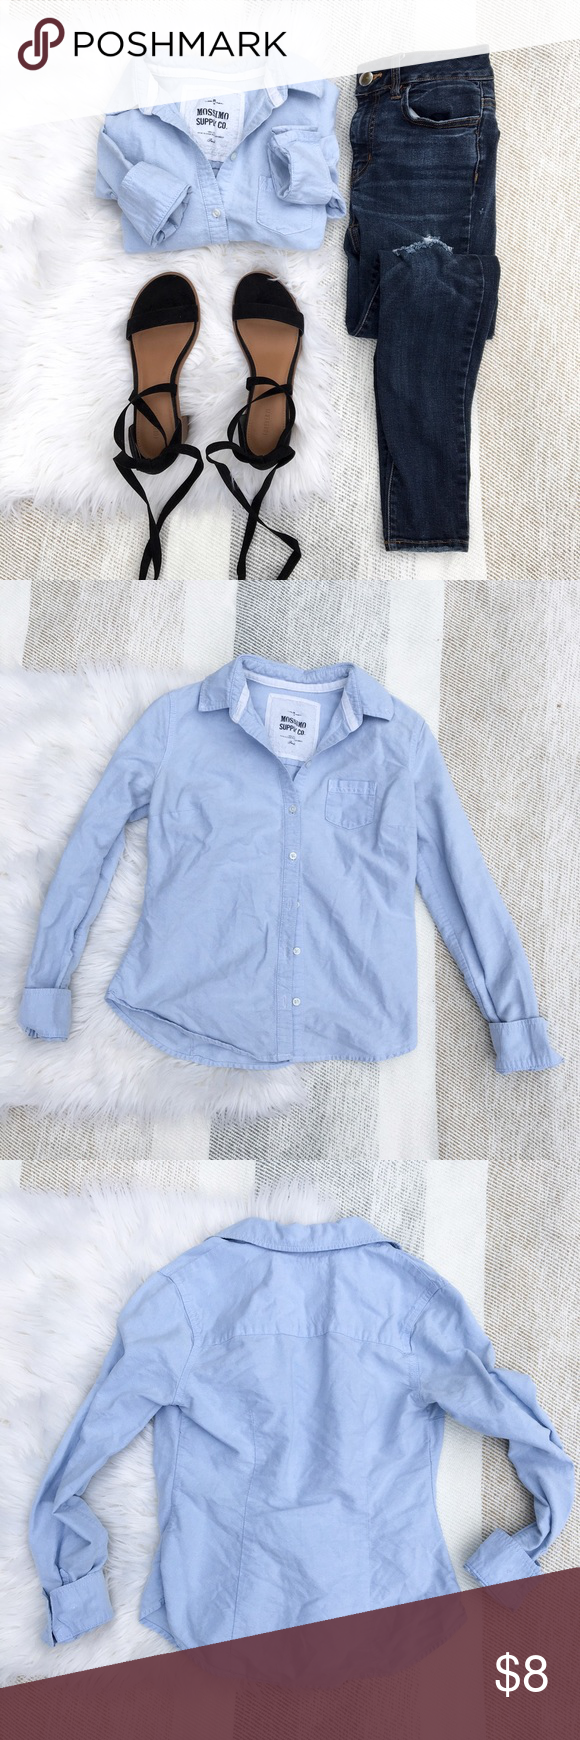 •Blue Button Down Long Sleeve Shirt• Gently worn, long sleeve button down shirt. Light weight material. Features small front chest pocket. Fitted silhouette. 100% cotton.   •color: light blue •true to size  {junior size small, fits me perfectly. I typically wear a 00P or XXSP from J. Crew, as a size reference}  •no trades(comments politely ignored) •bundle to save Mossimo Supply Co Tops Button Down Shirts